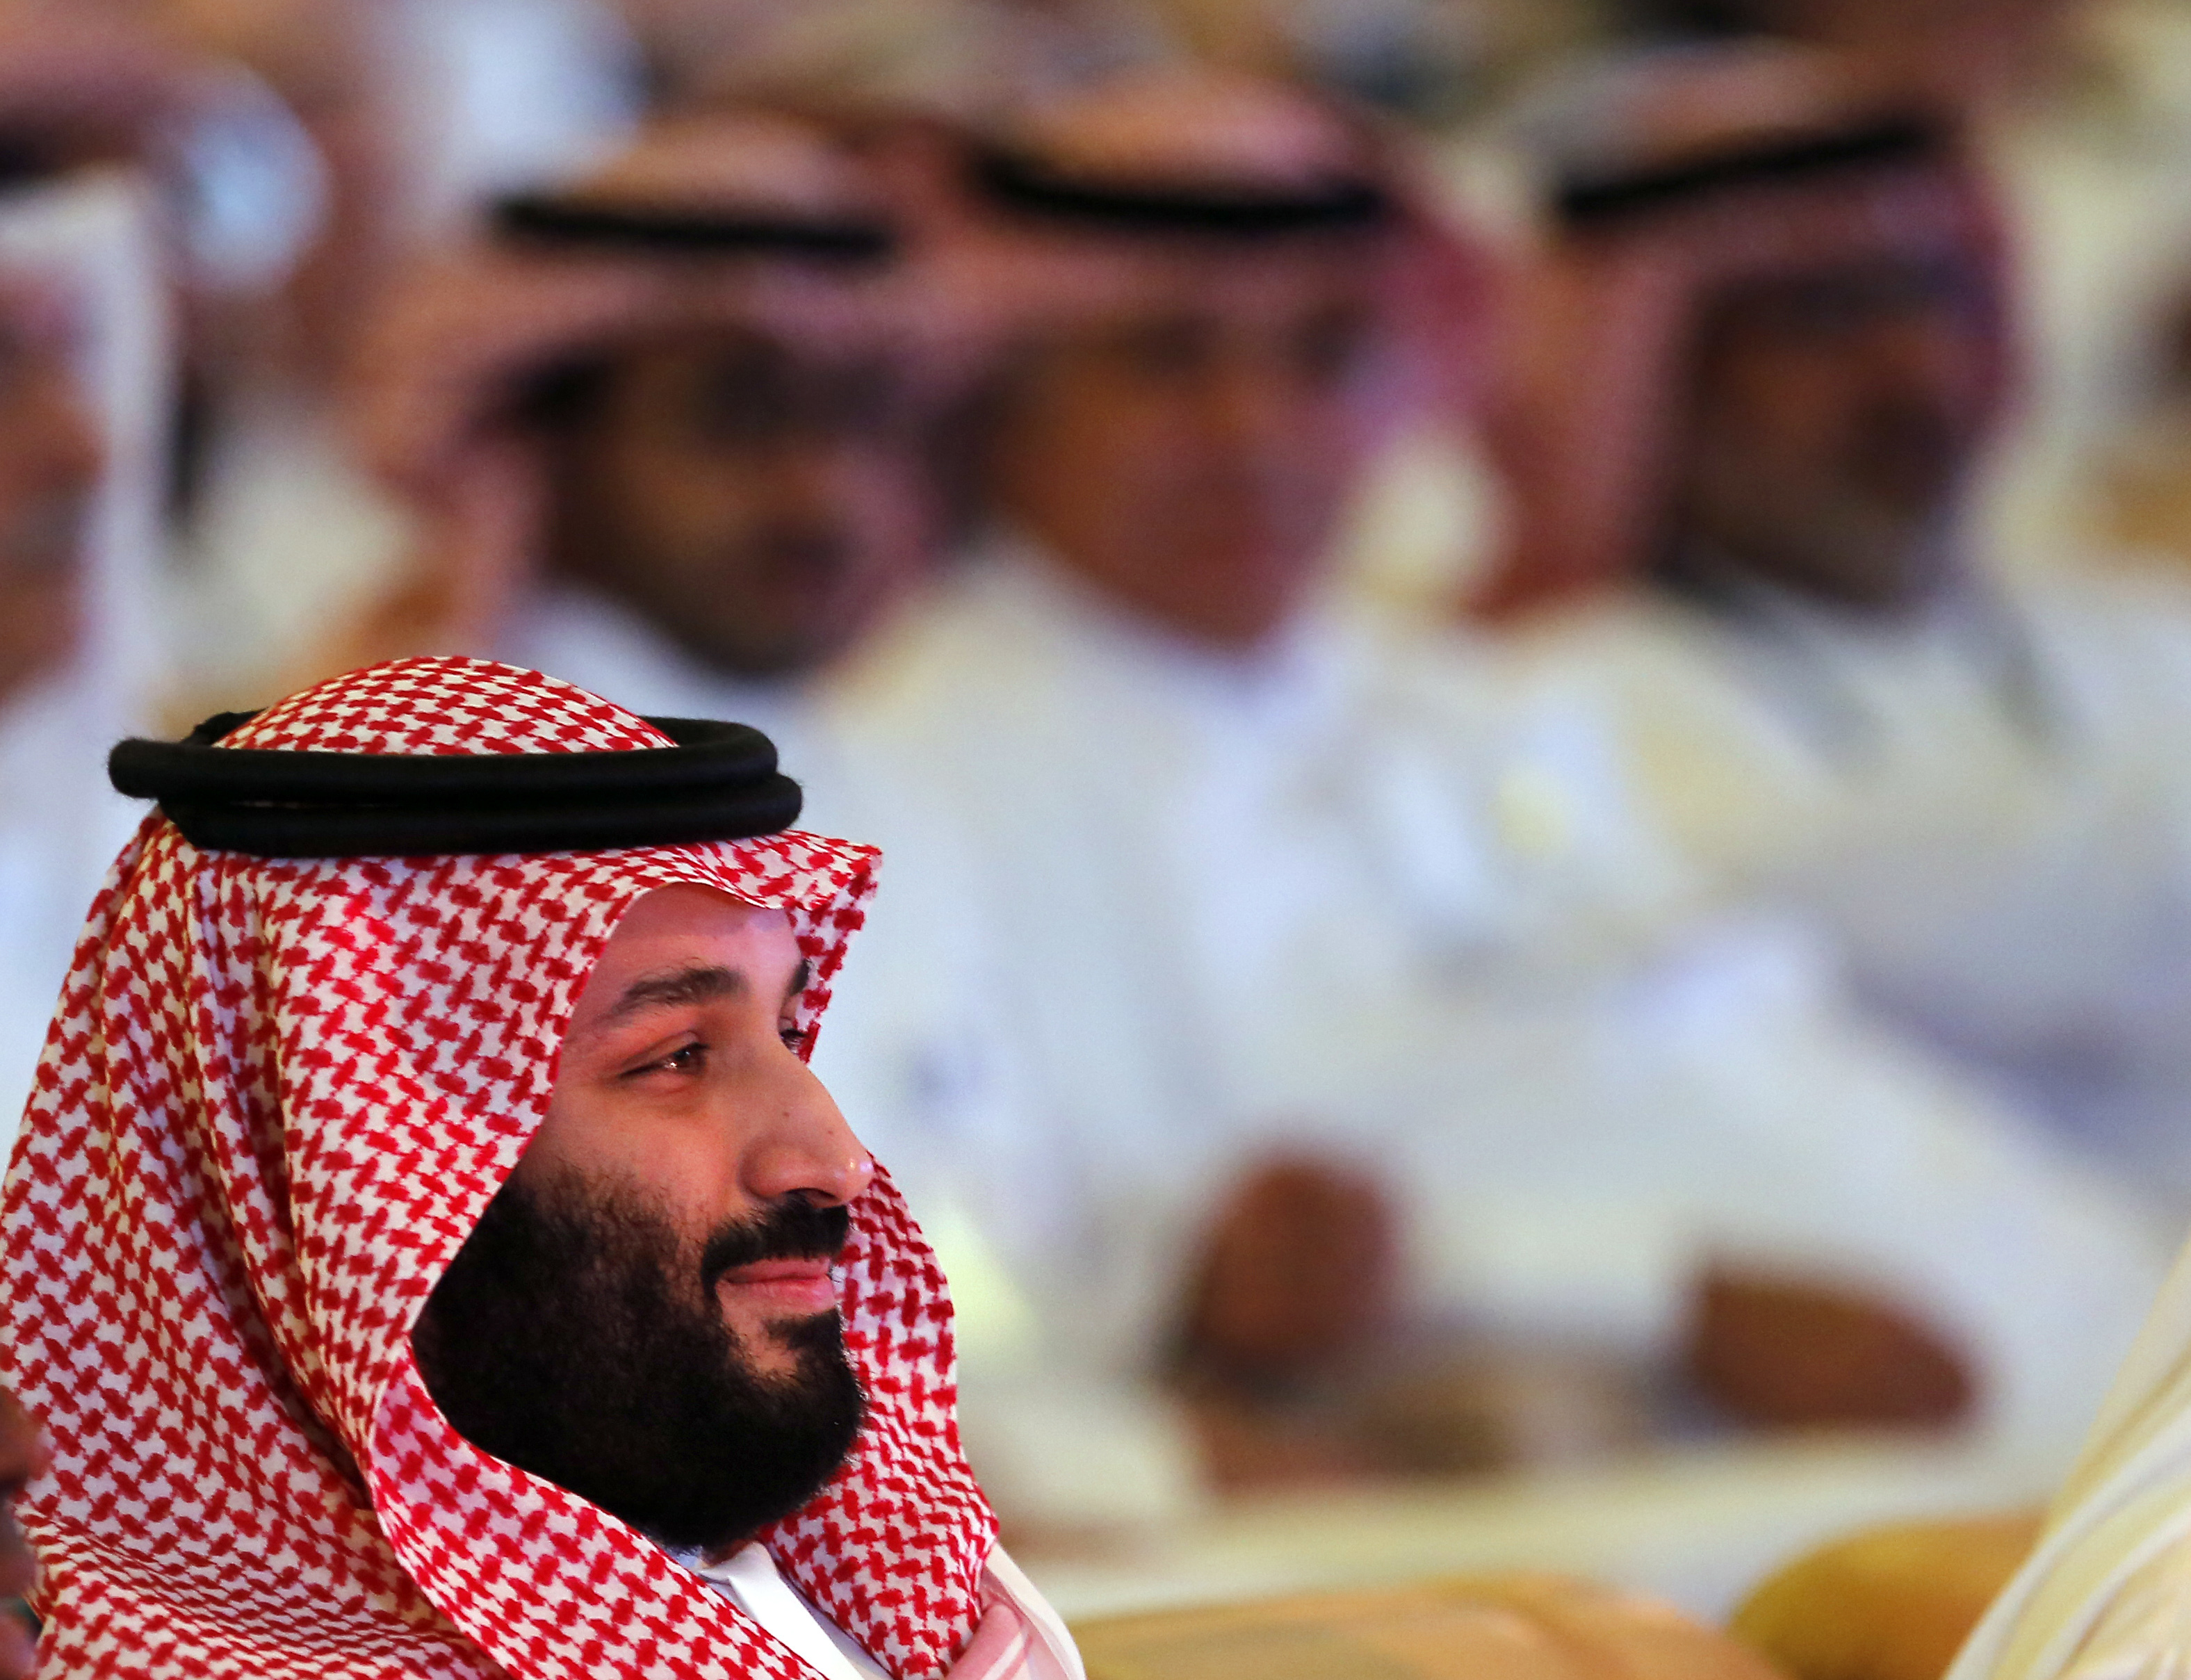 Saudi Crown Prince Mohammed bin Salman attends the second day of the Future Investment Initiative conference, in Riyadh, Saudi Arabia, Oct. 24, 2018. The Crown Prince's comments at the summit were his first since the killing earlier in the month of W...